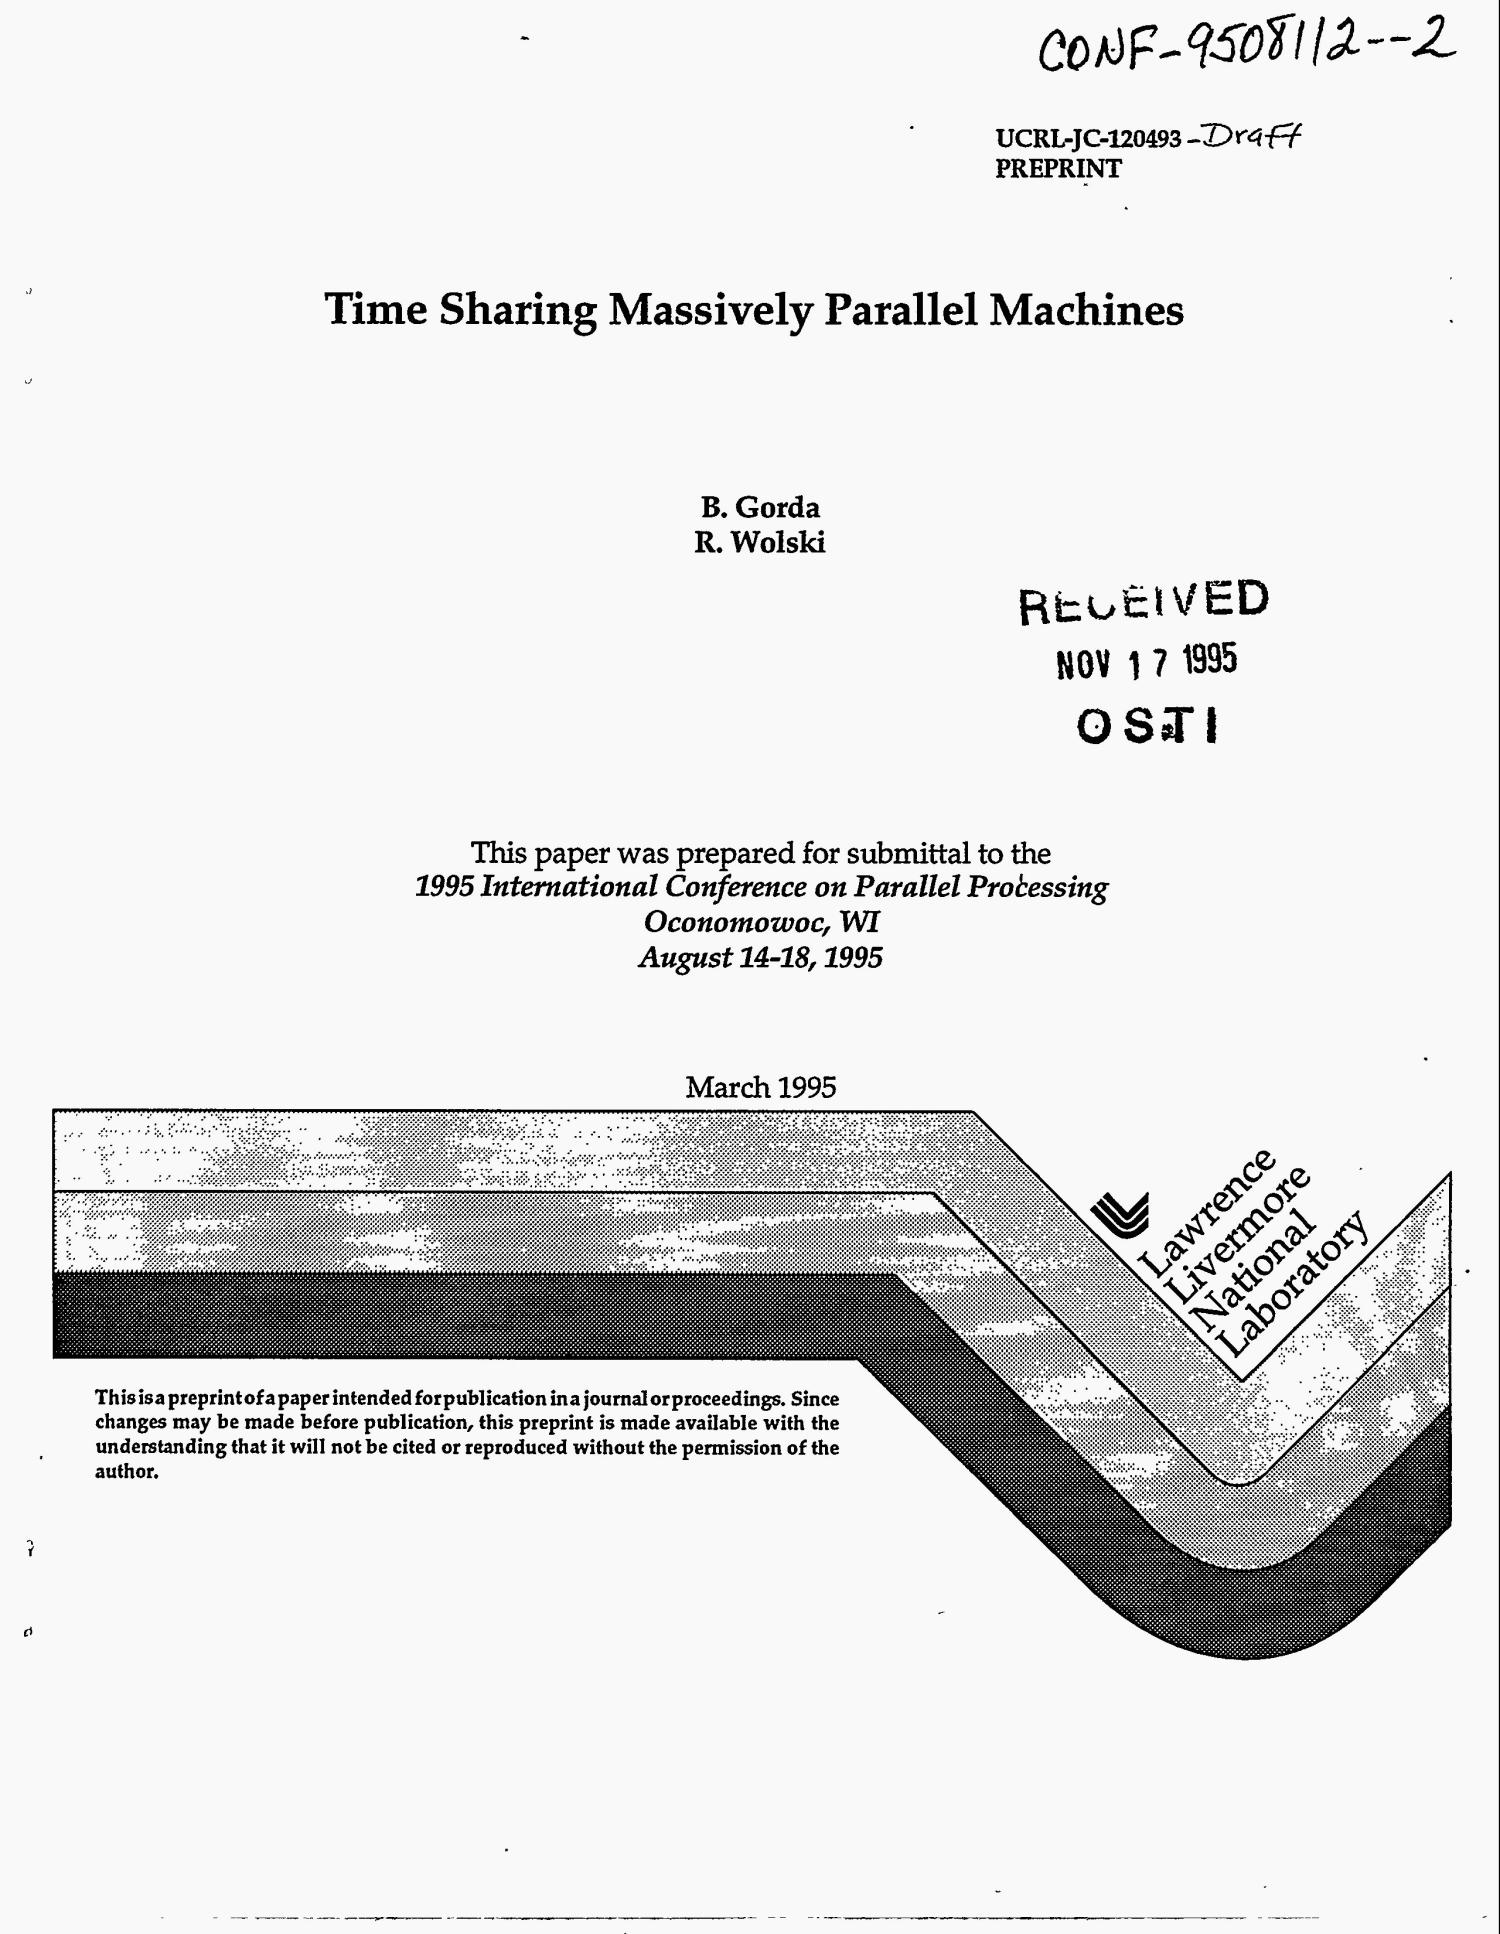 Time sharing massively parallel machines. Draft                                                                                                      [Sequence #]: 1 of 22